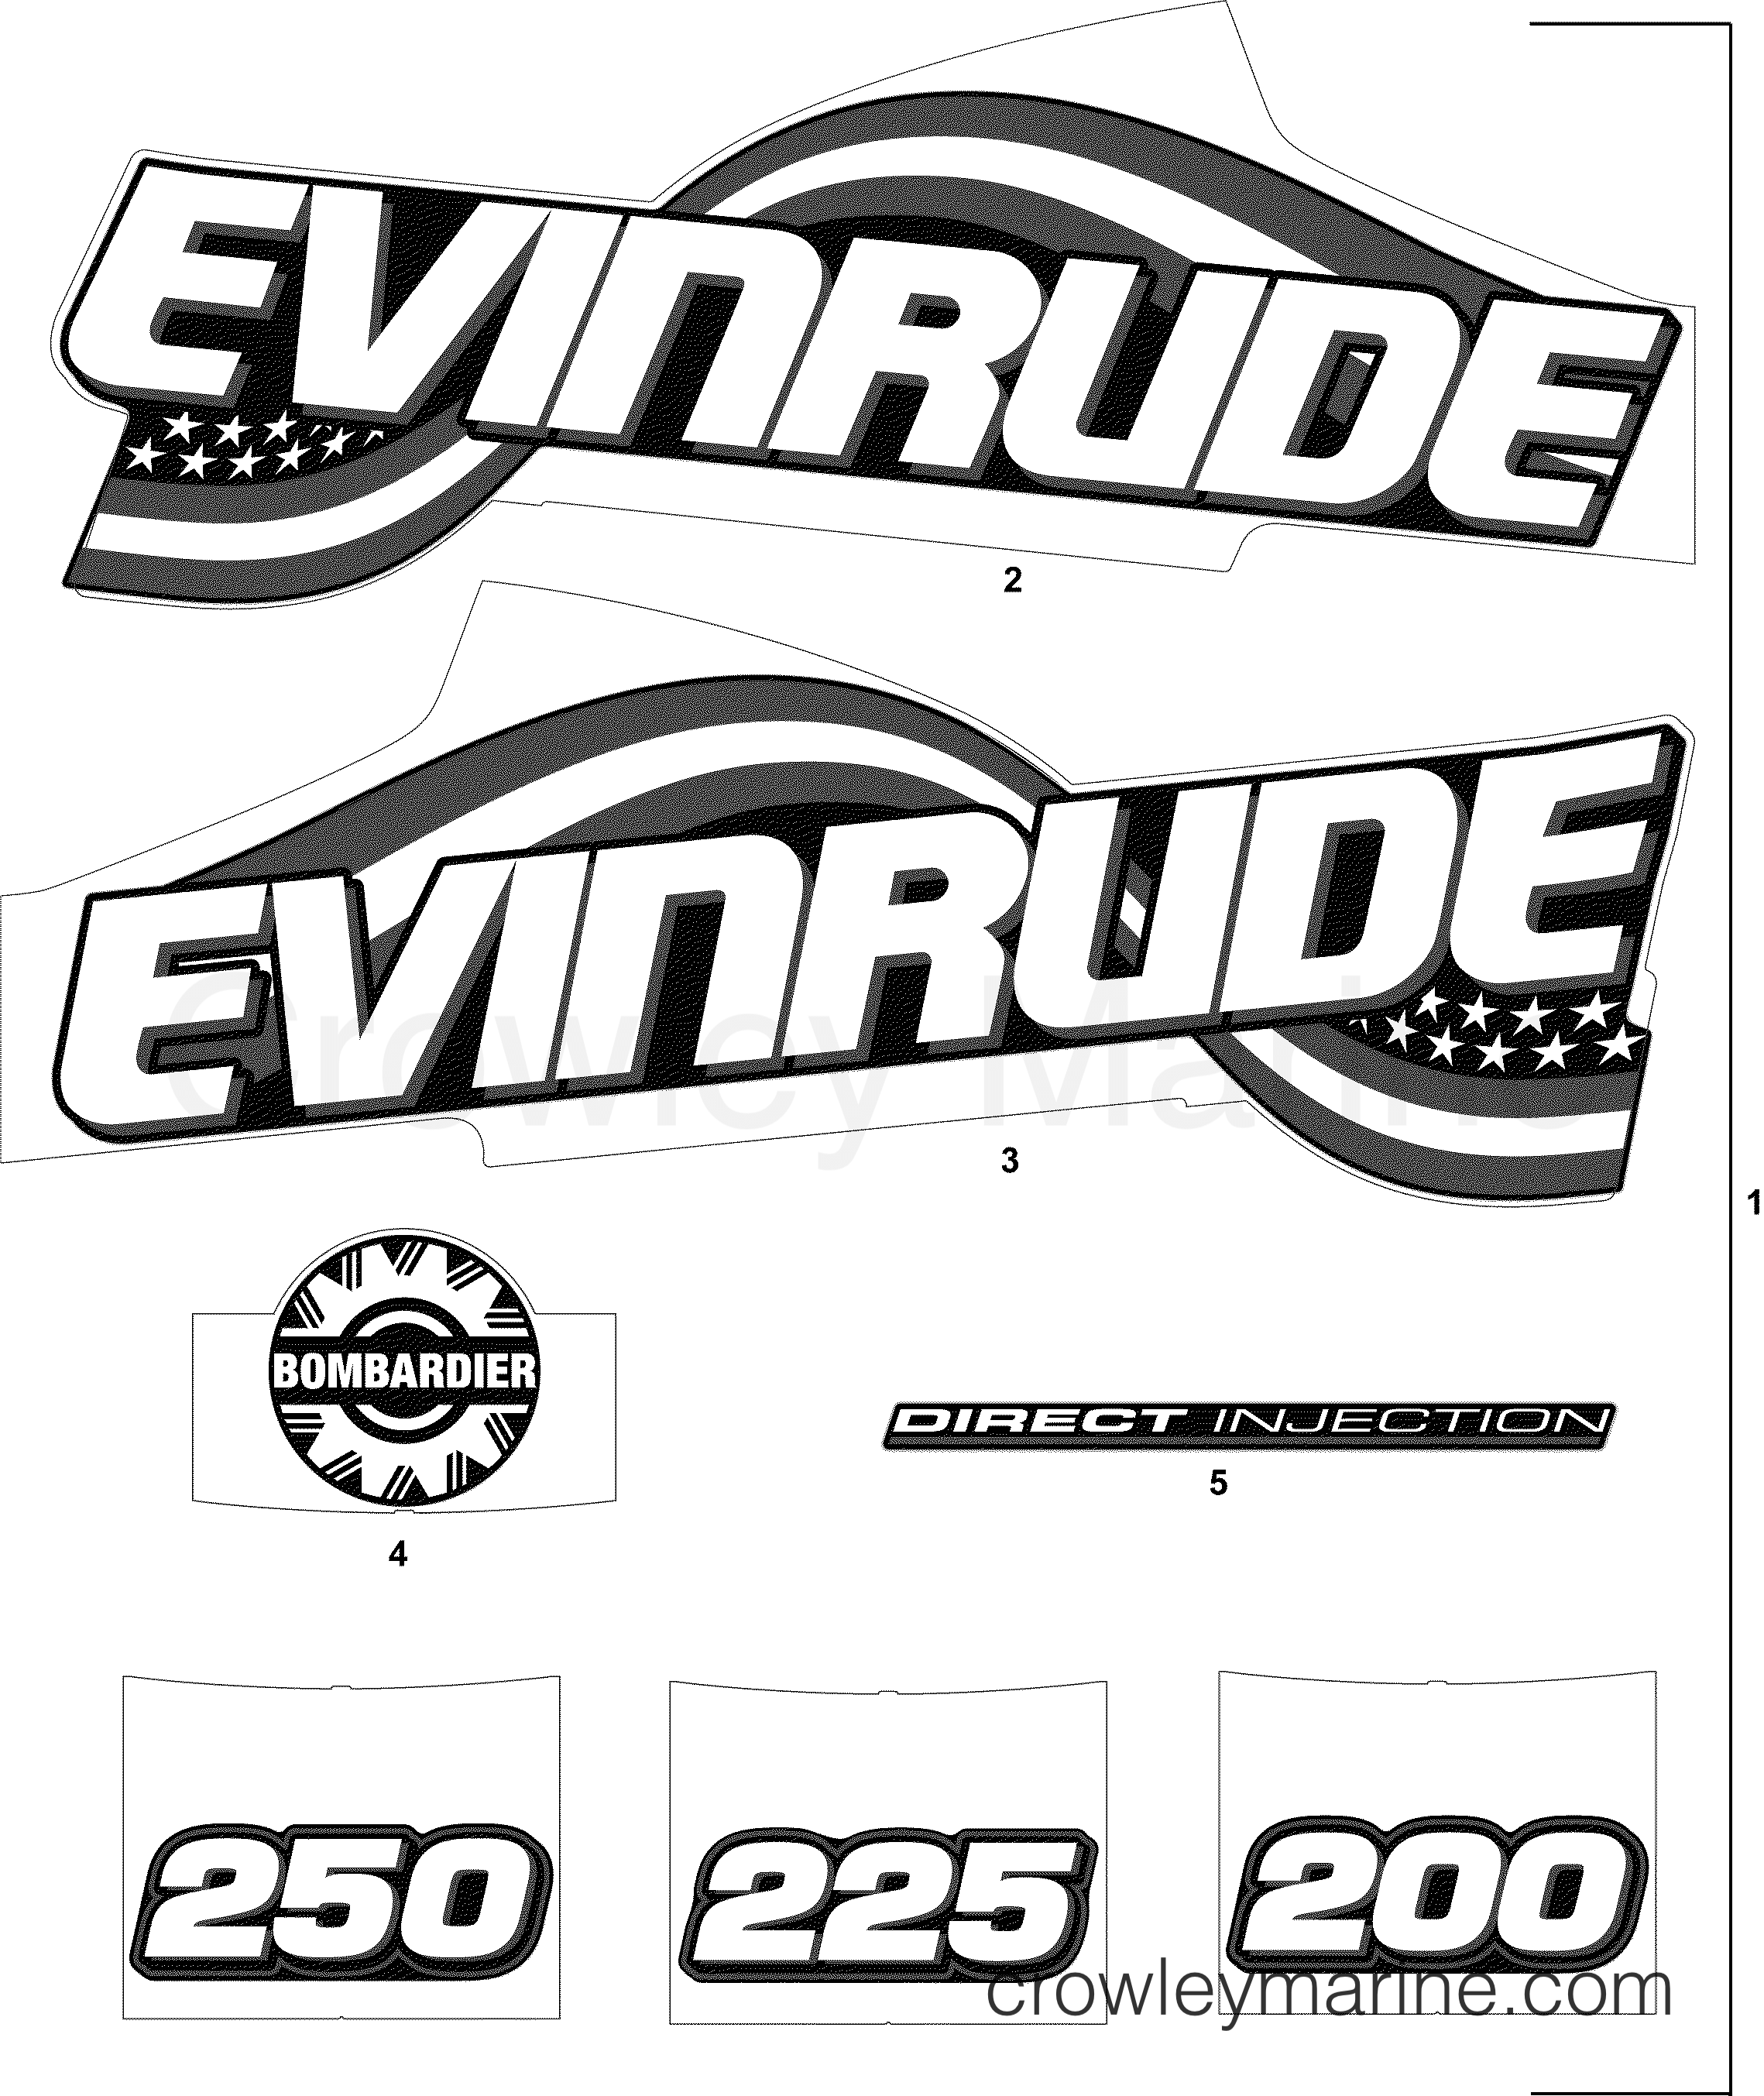 2004 Evinrude Outboards 200 - E200FCXSRB - DECAL ACCESSORY SET - BLUE MODELS section